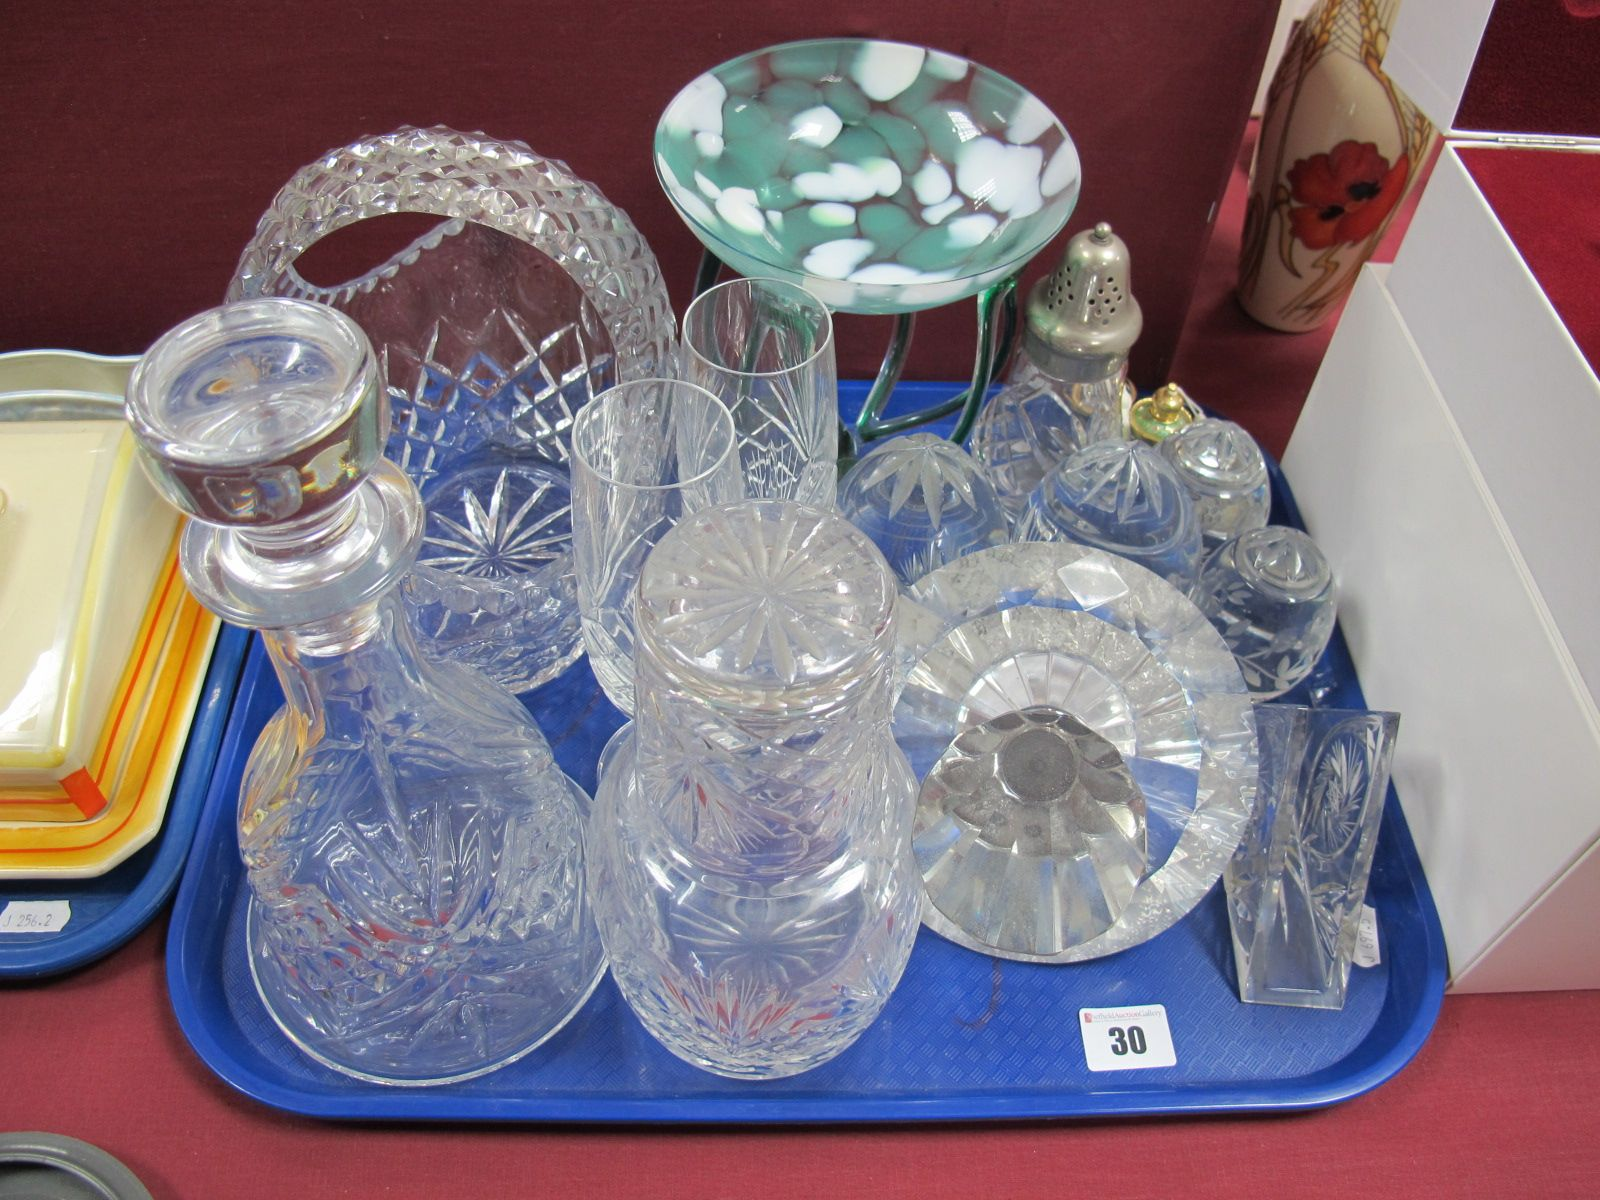 Lot 30 - Lead Crystal Glass Ware, carafe, paperweights, caster, studio glass pedestal dish, large scent